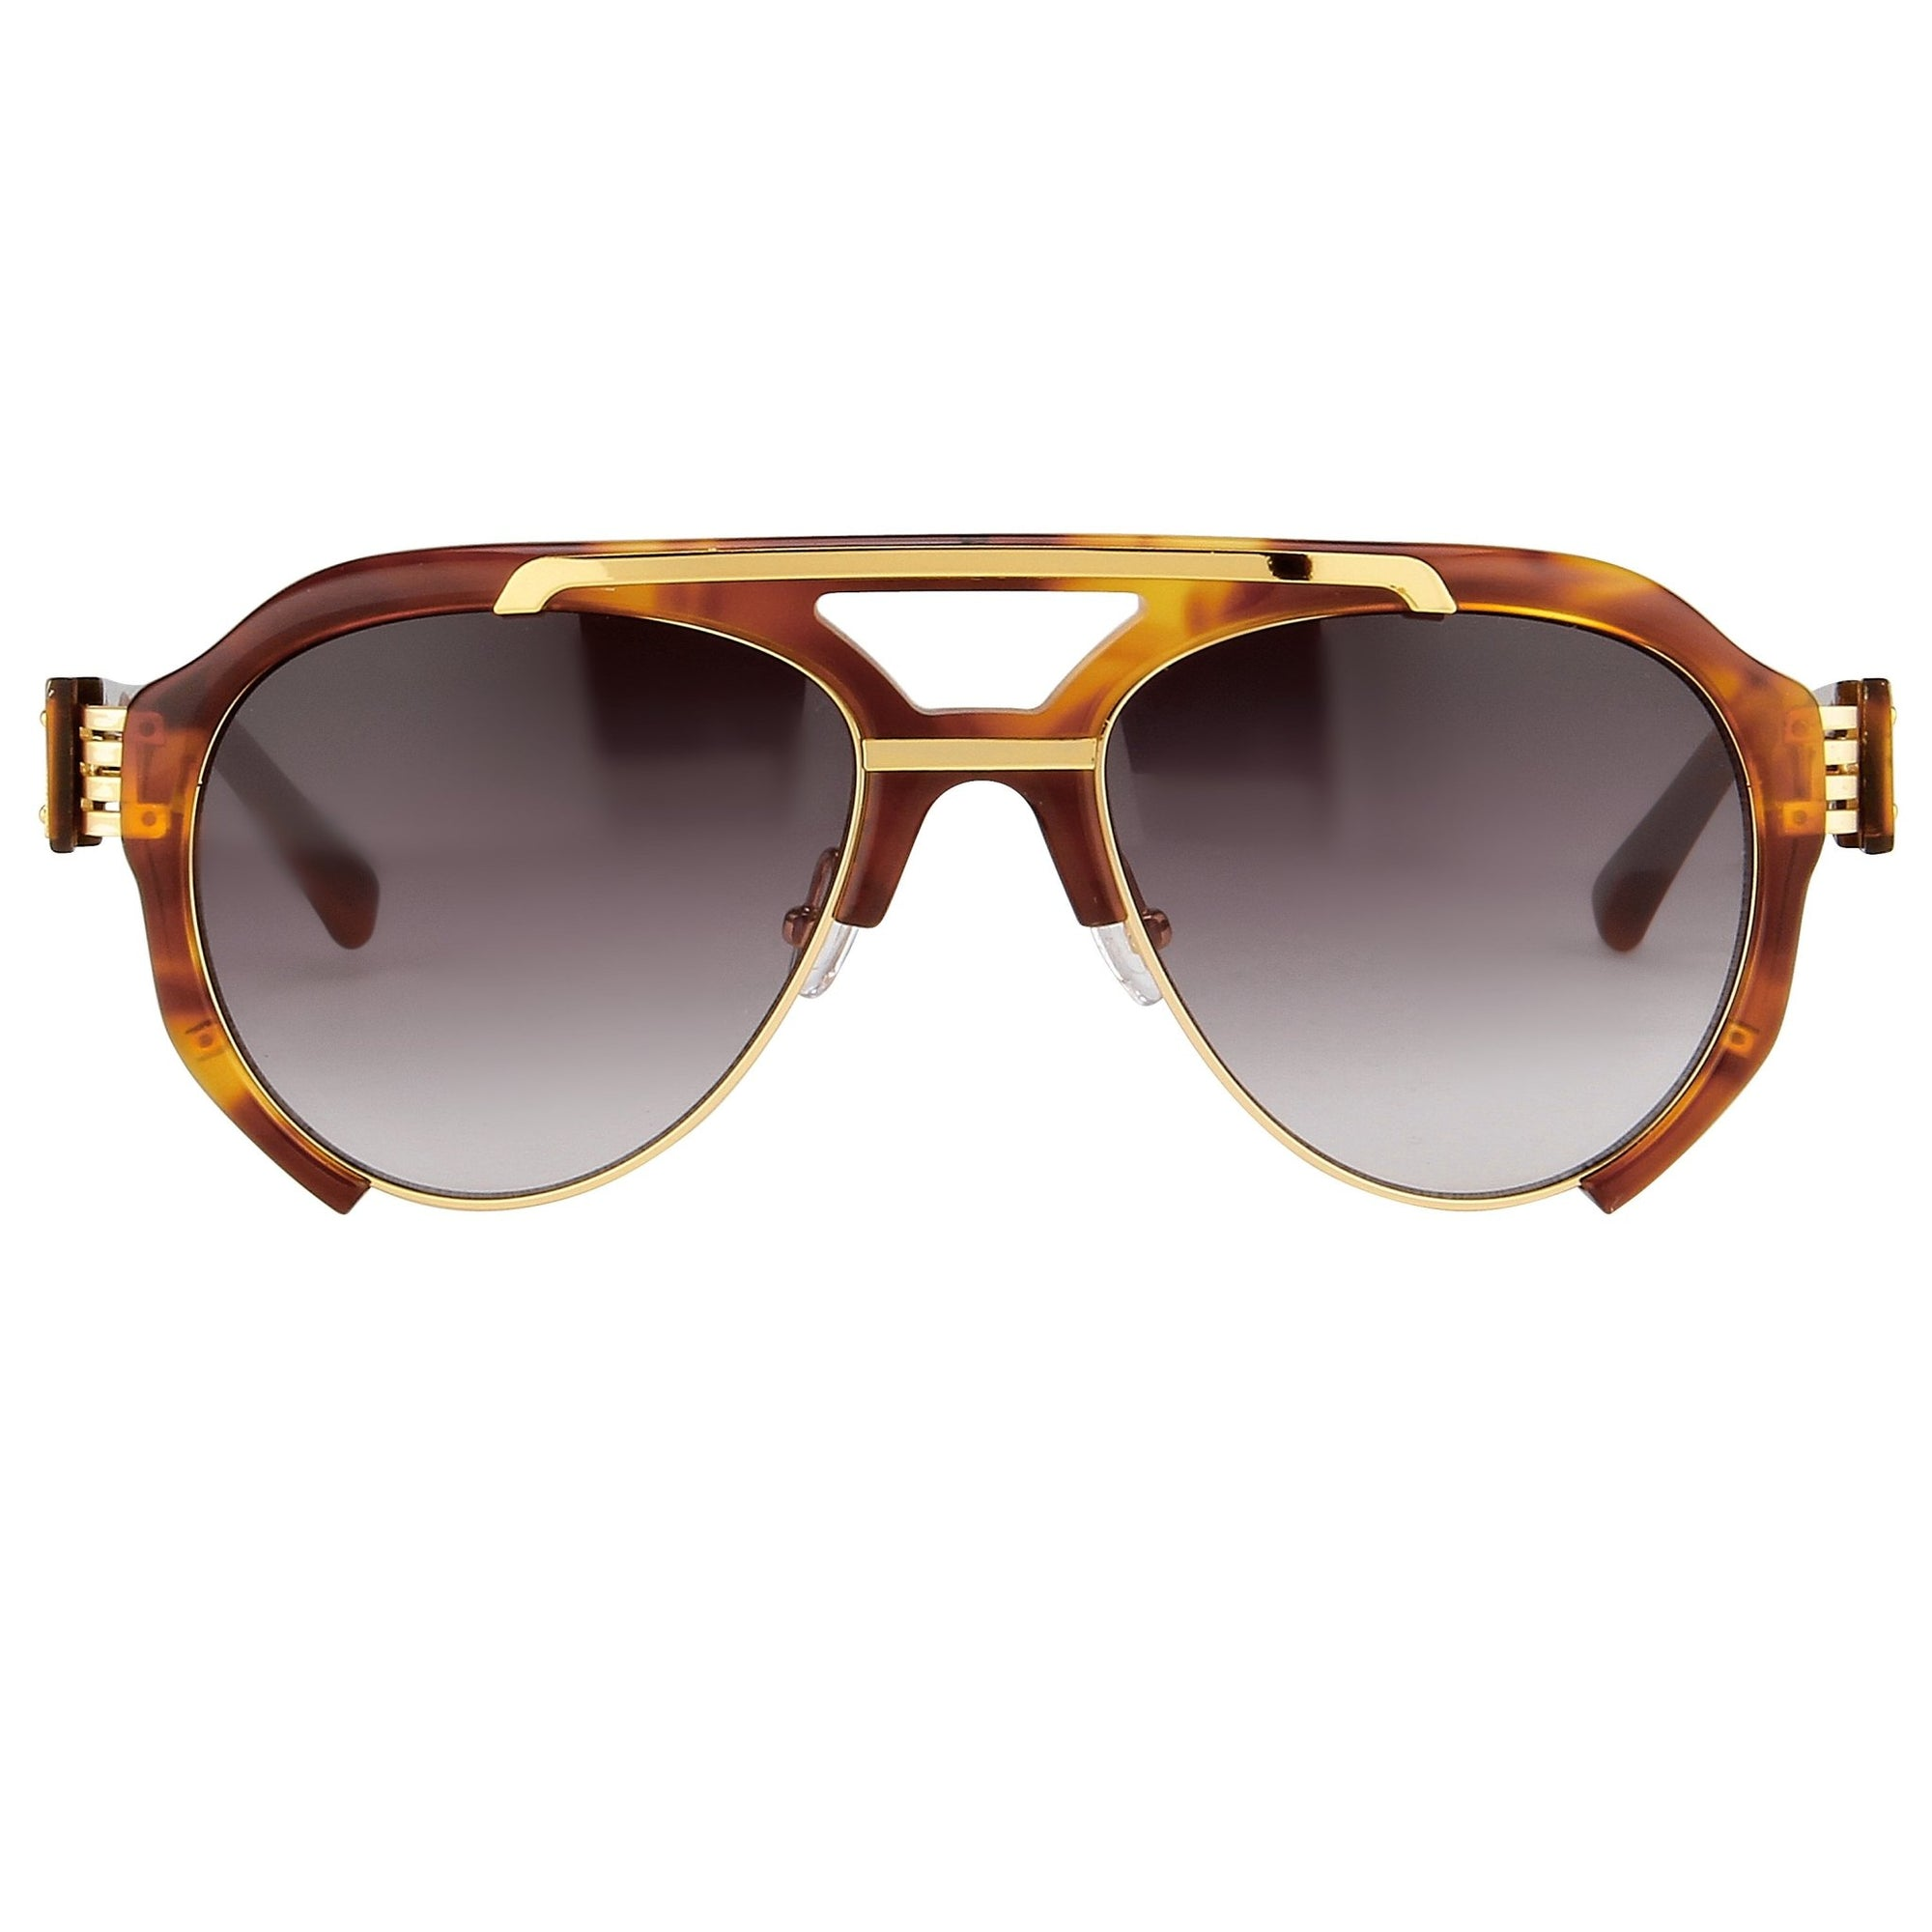 Prabal Gurung Sunglasses Unisex Aviator Tortoise Shell Acetate and Gold CAT3 Grey Gradient Lenses PG11C4SUN - Watches & Crystals